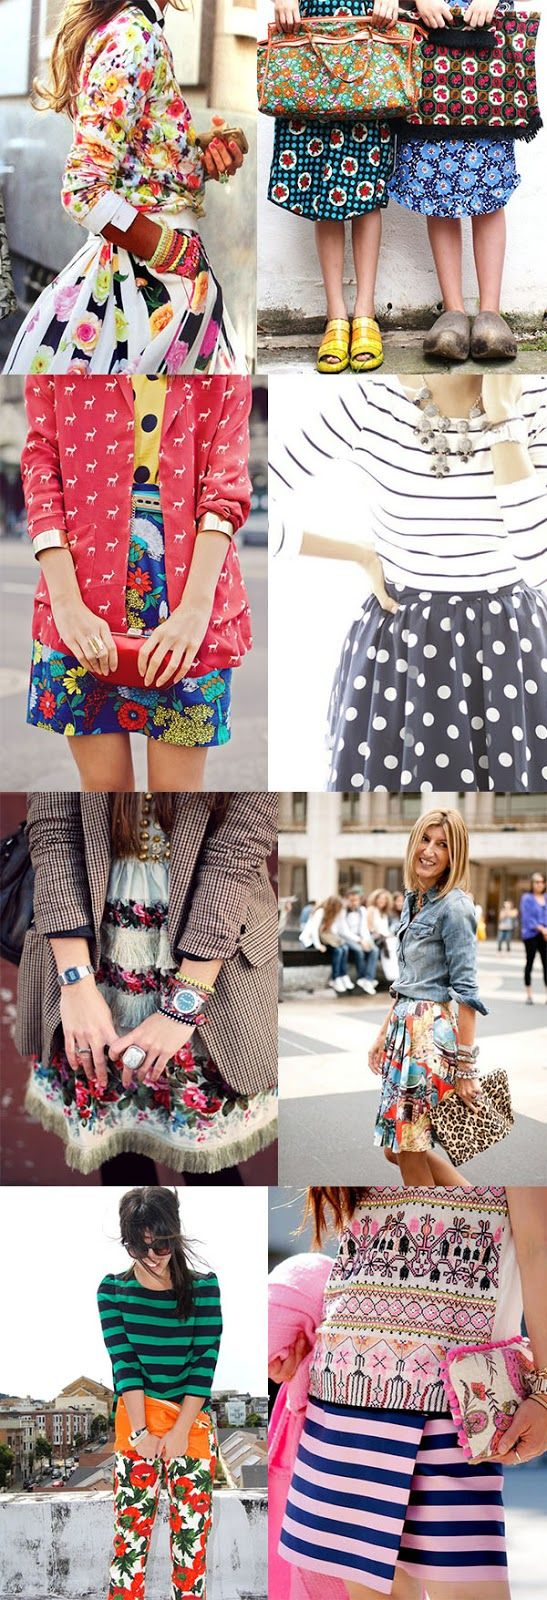 Mixing and matching floral patterns is our new favorite fall fashion trend…. Pattern mixing. Print mixing.